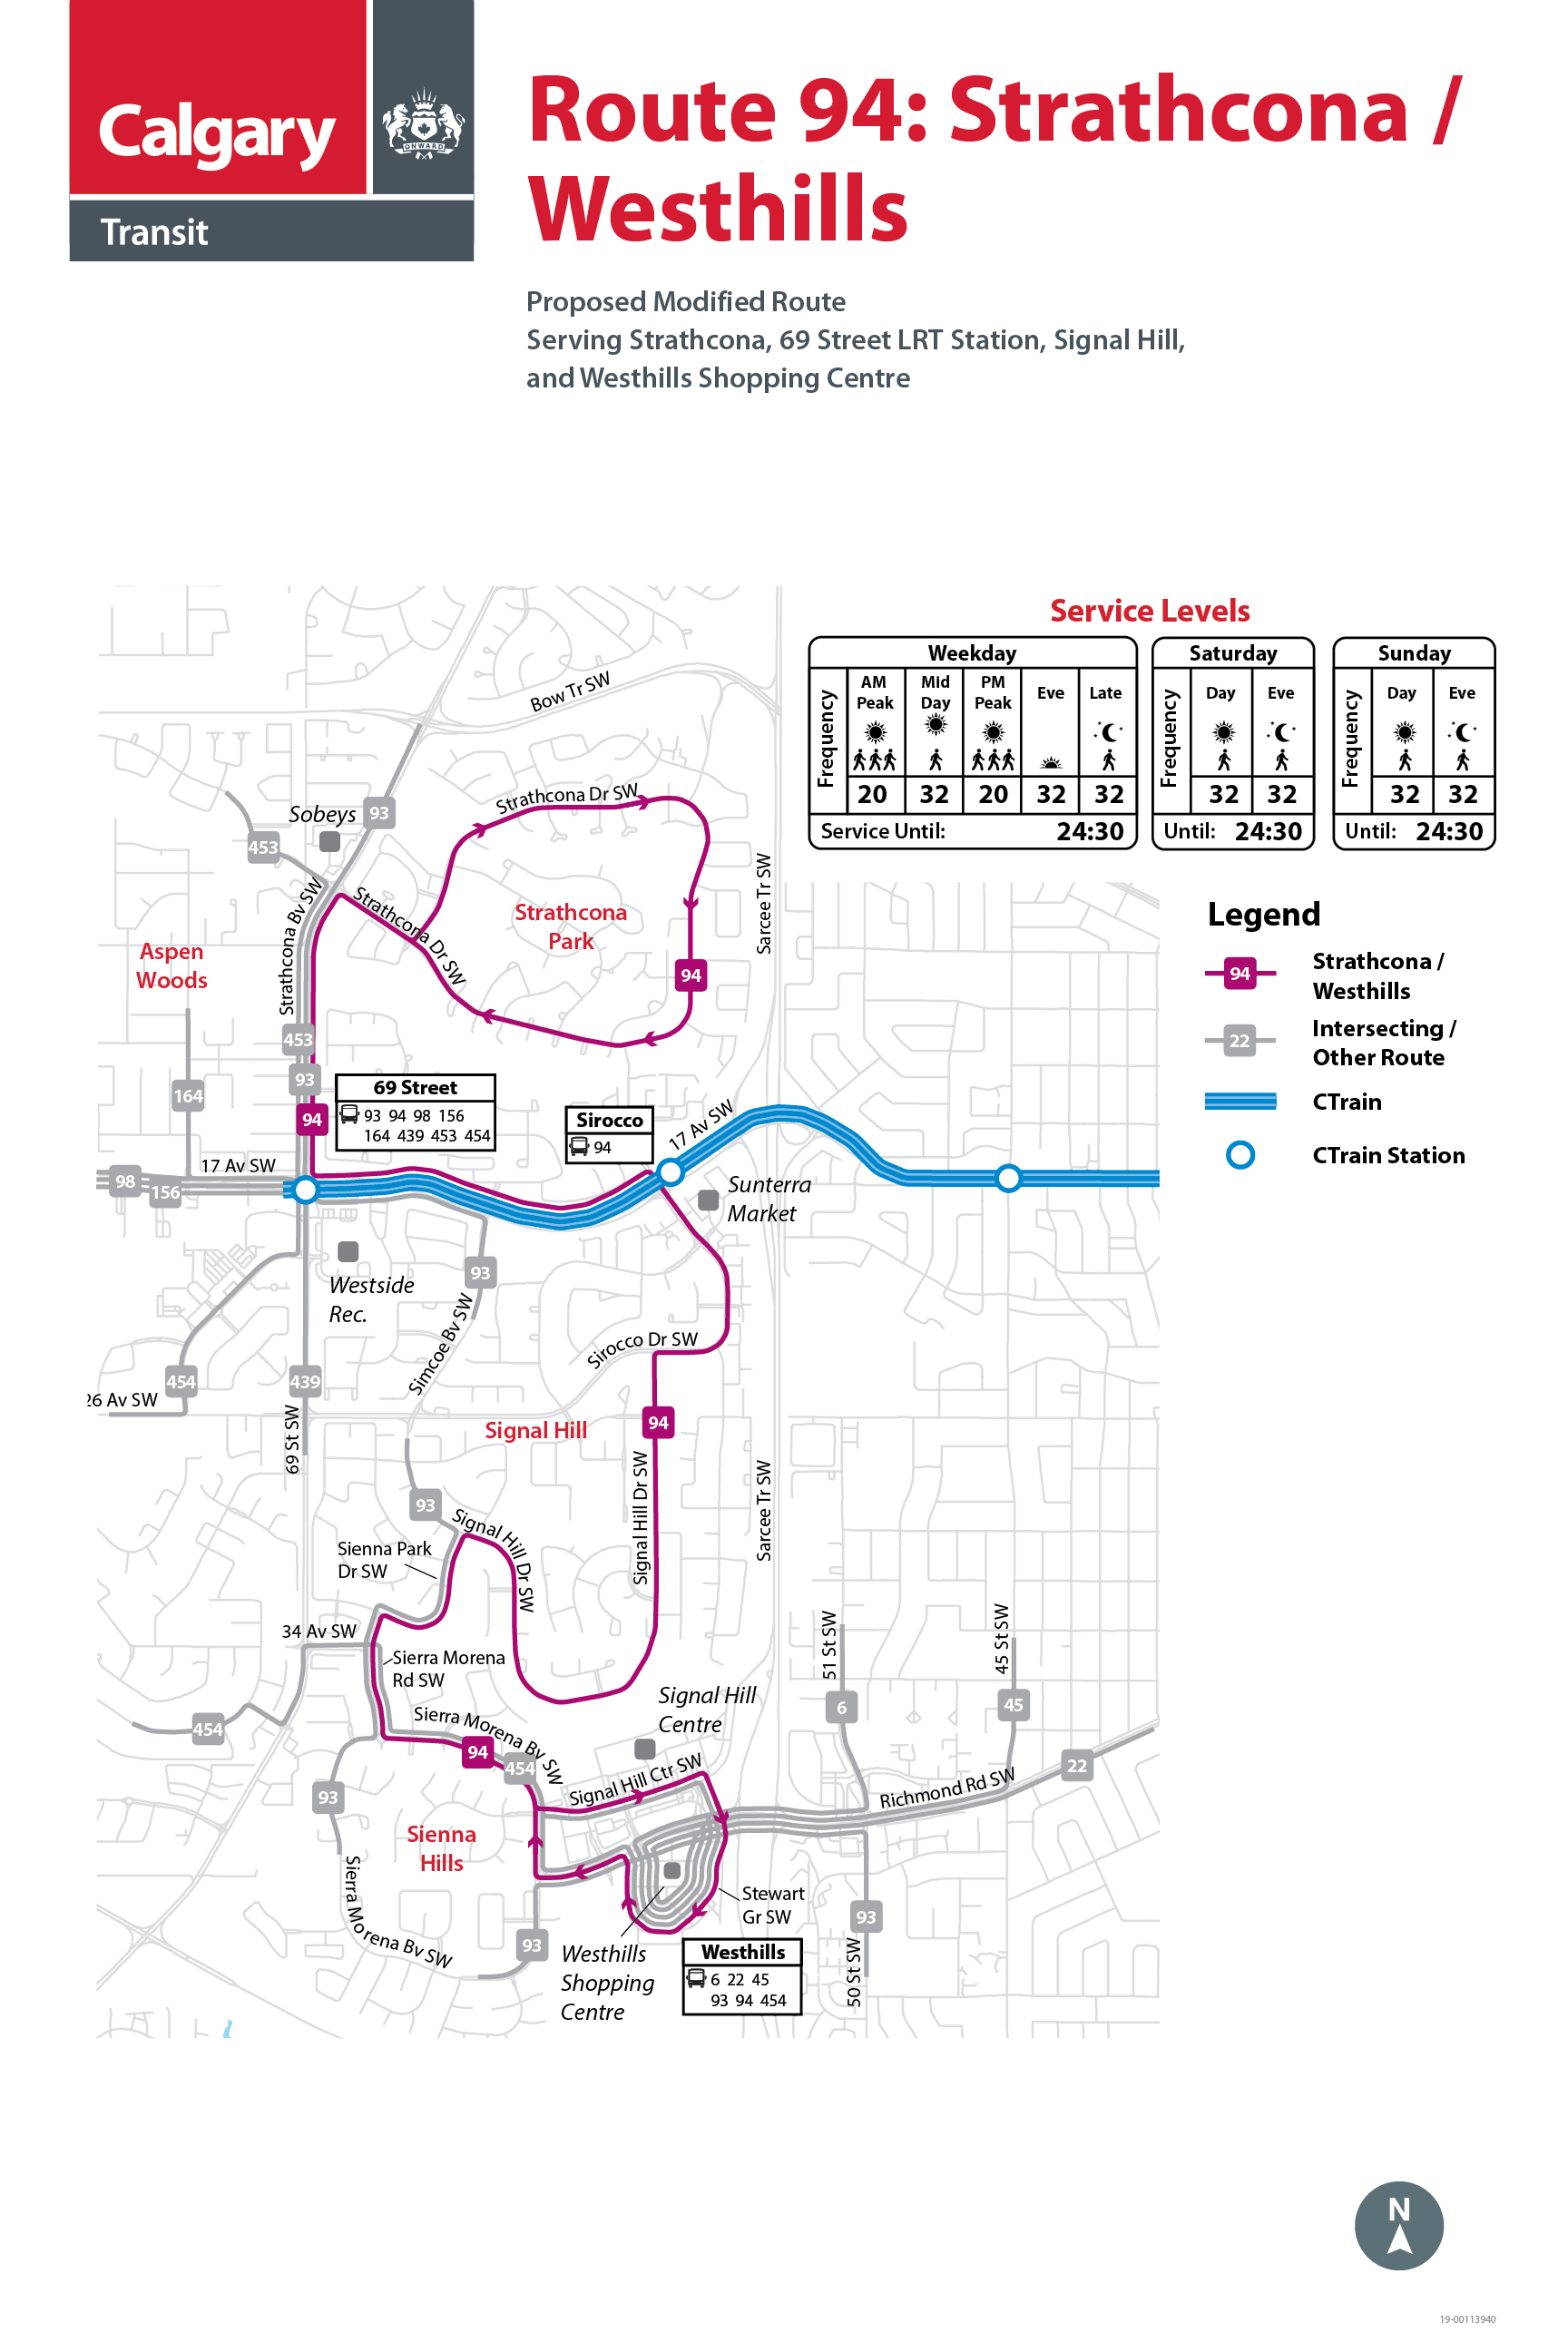 Proposed Changes to Route 94